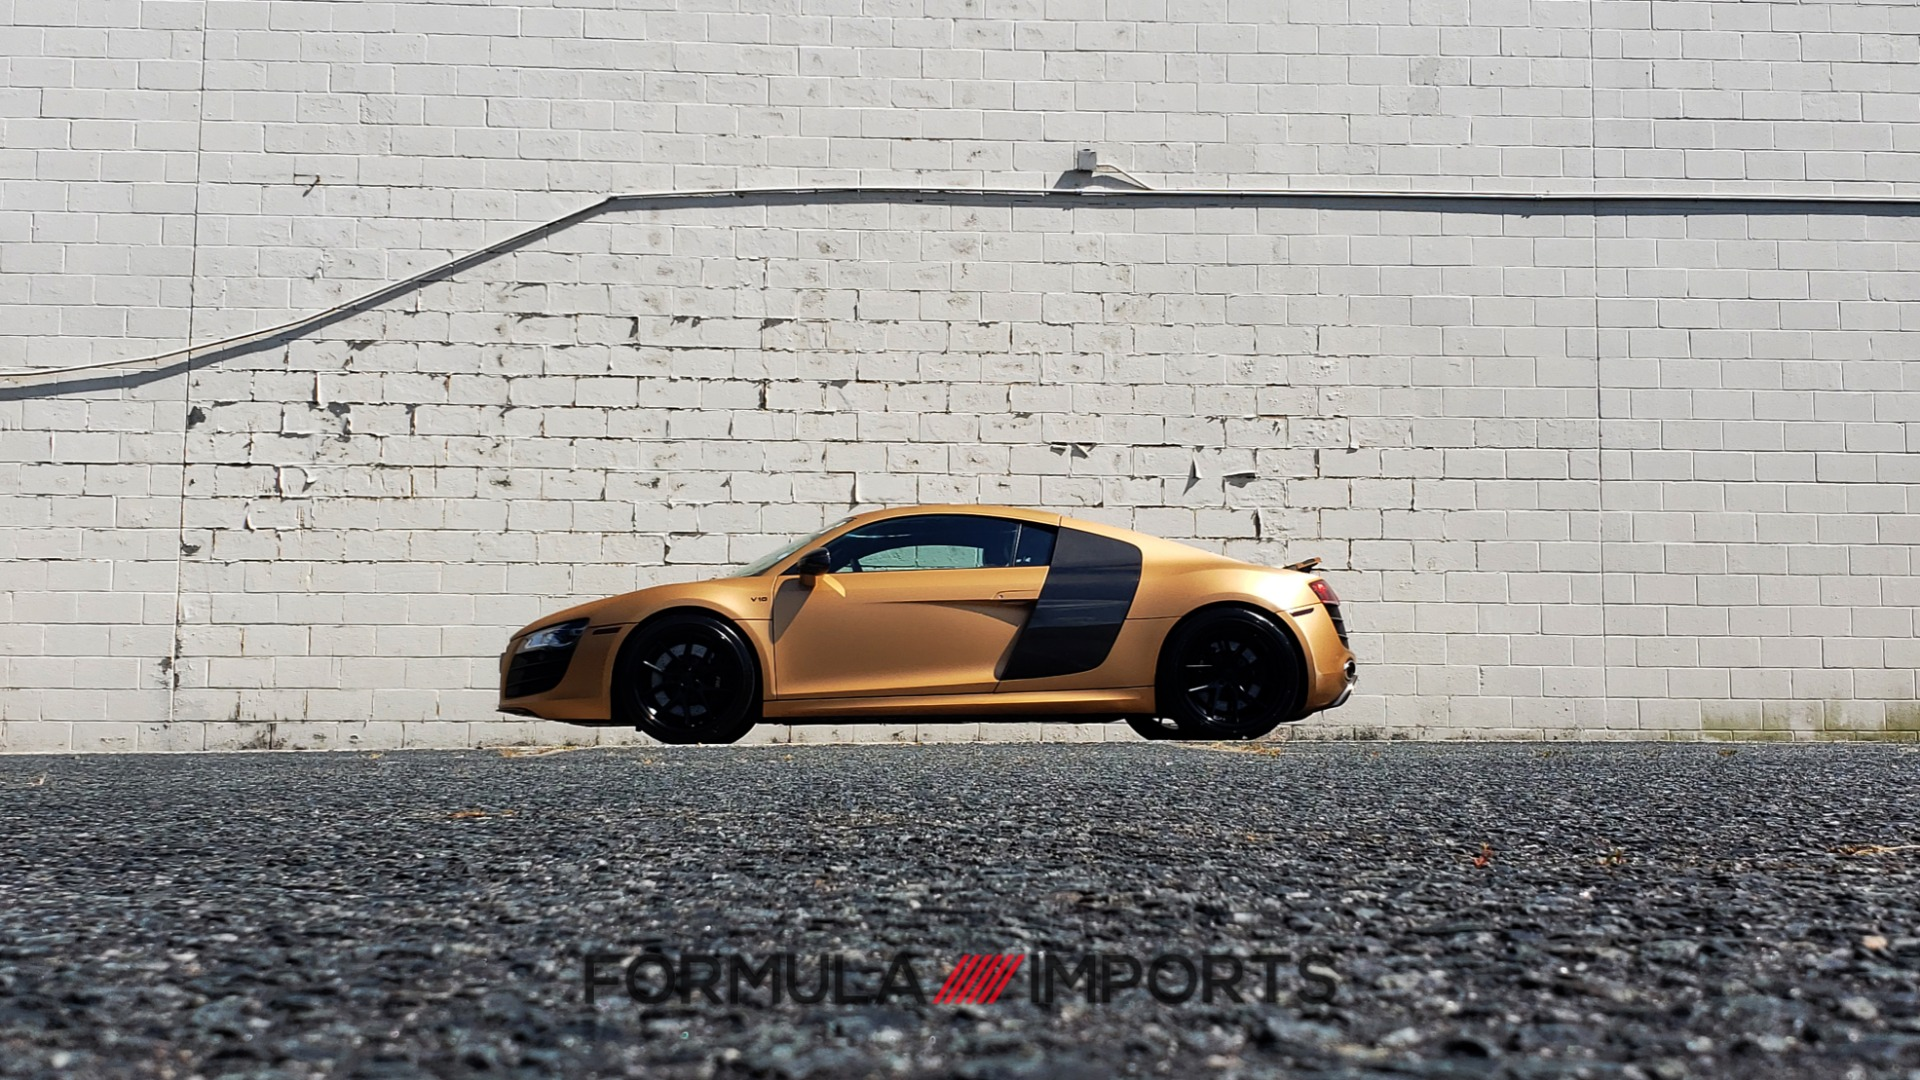 Used 2012 Audi R8 V10 5.2L / CUST WRAP BRUSHED BRONZE / NAV / B&O SOUND / CUST 19IN WHLS for sale $79,999 at Formula Imports in Charlotte NC 28227 74